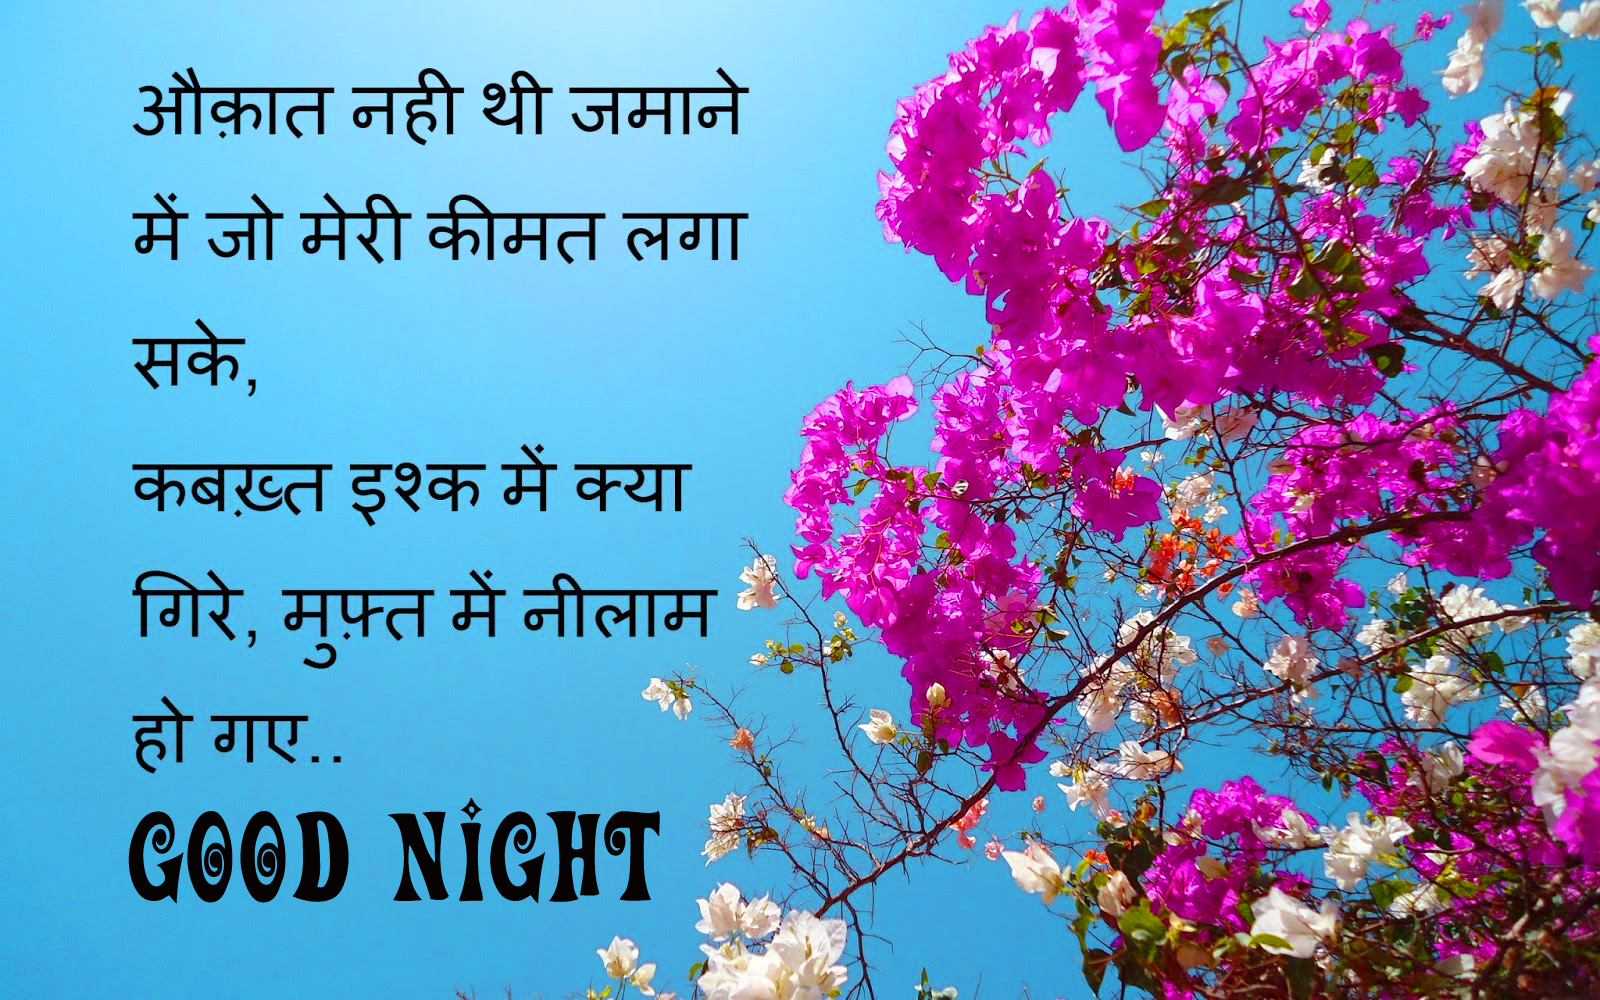 Best hindi quotes good night images Photo Pics Free DownloadBest hindi quotes good night Images (2)